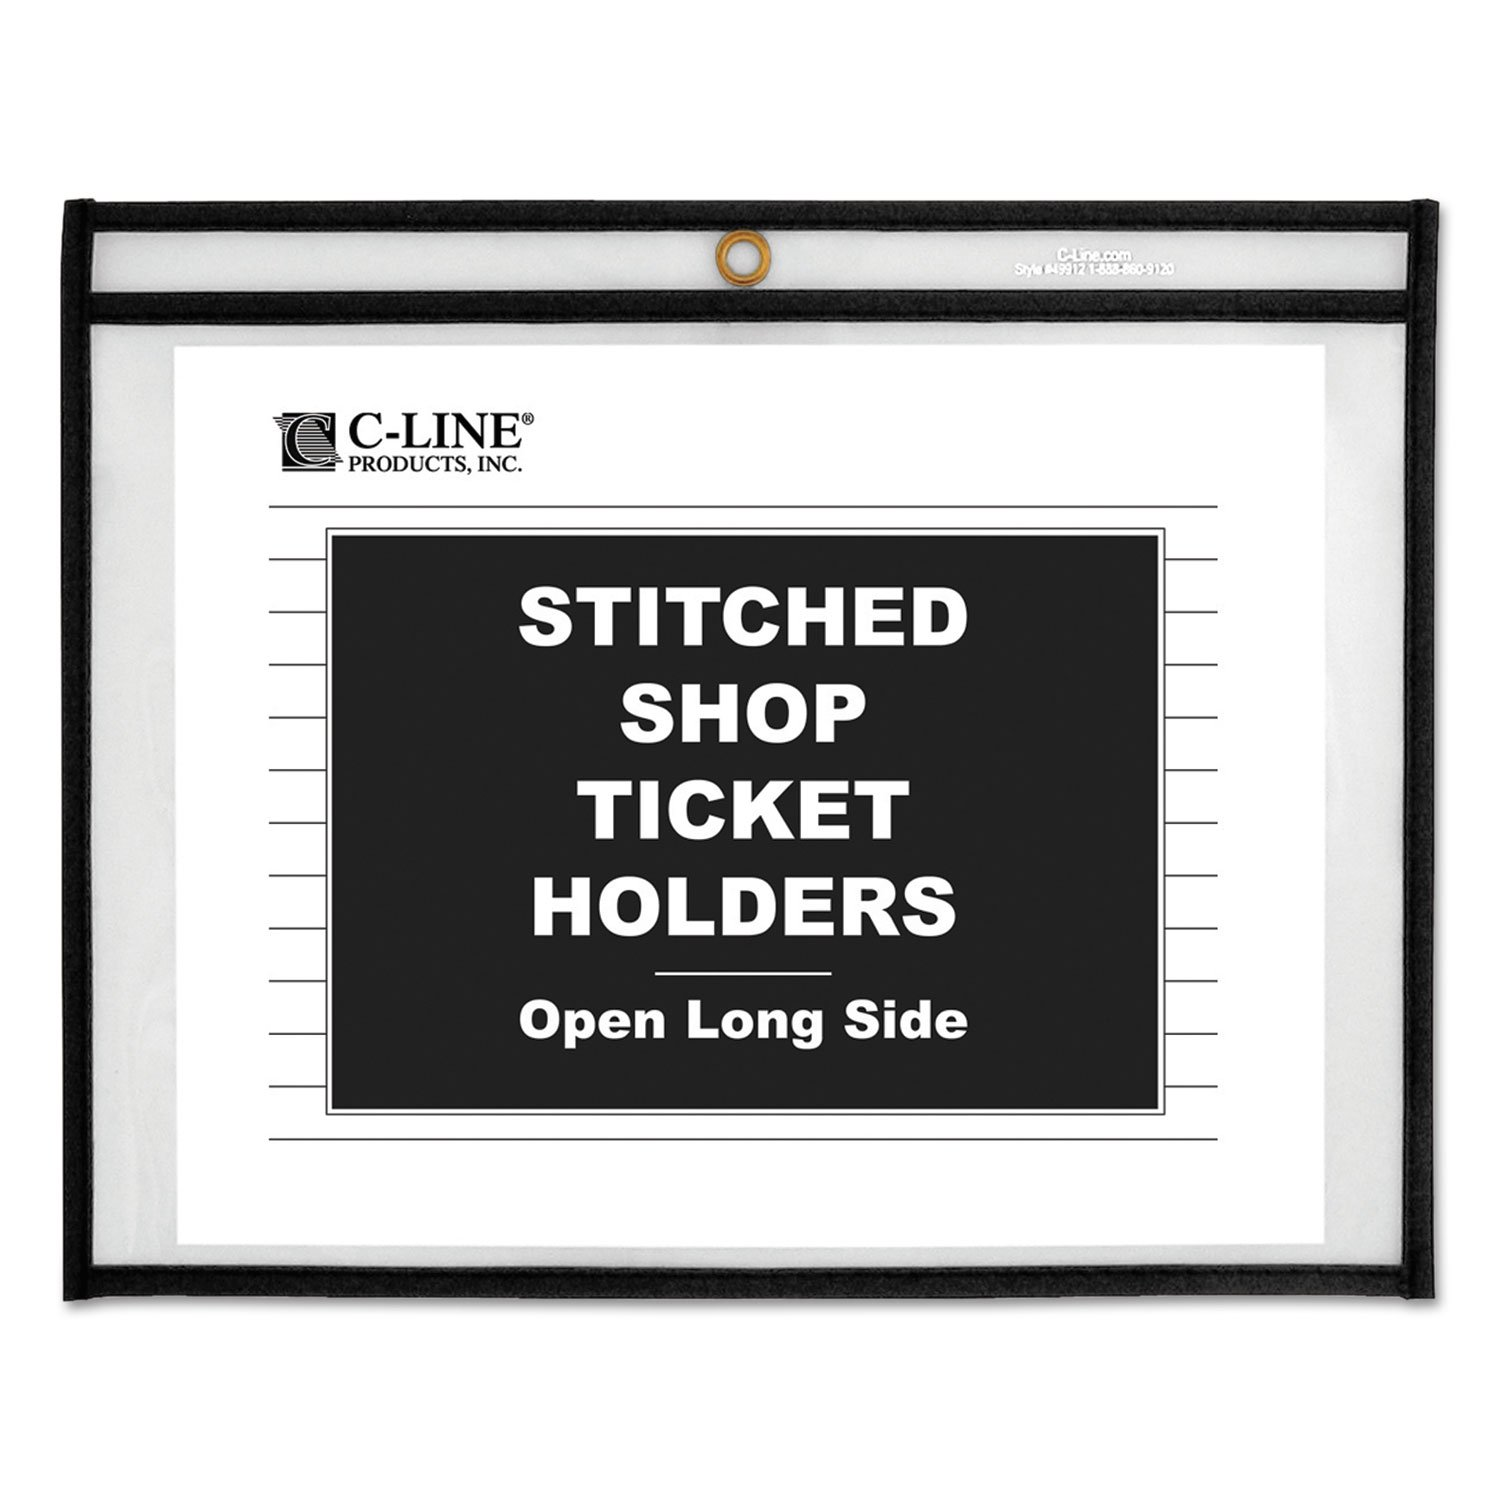 CLI49911 - C-line Shop Ticket Holders by C-Line